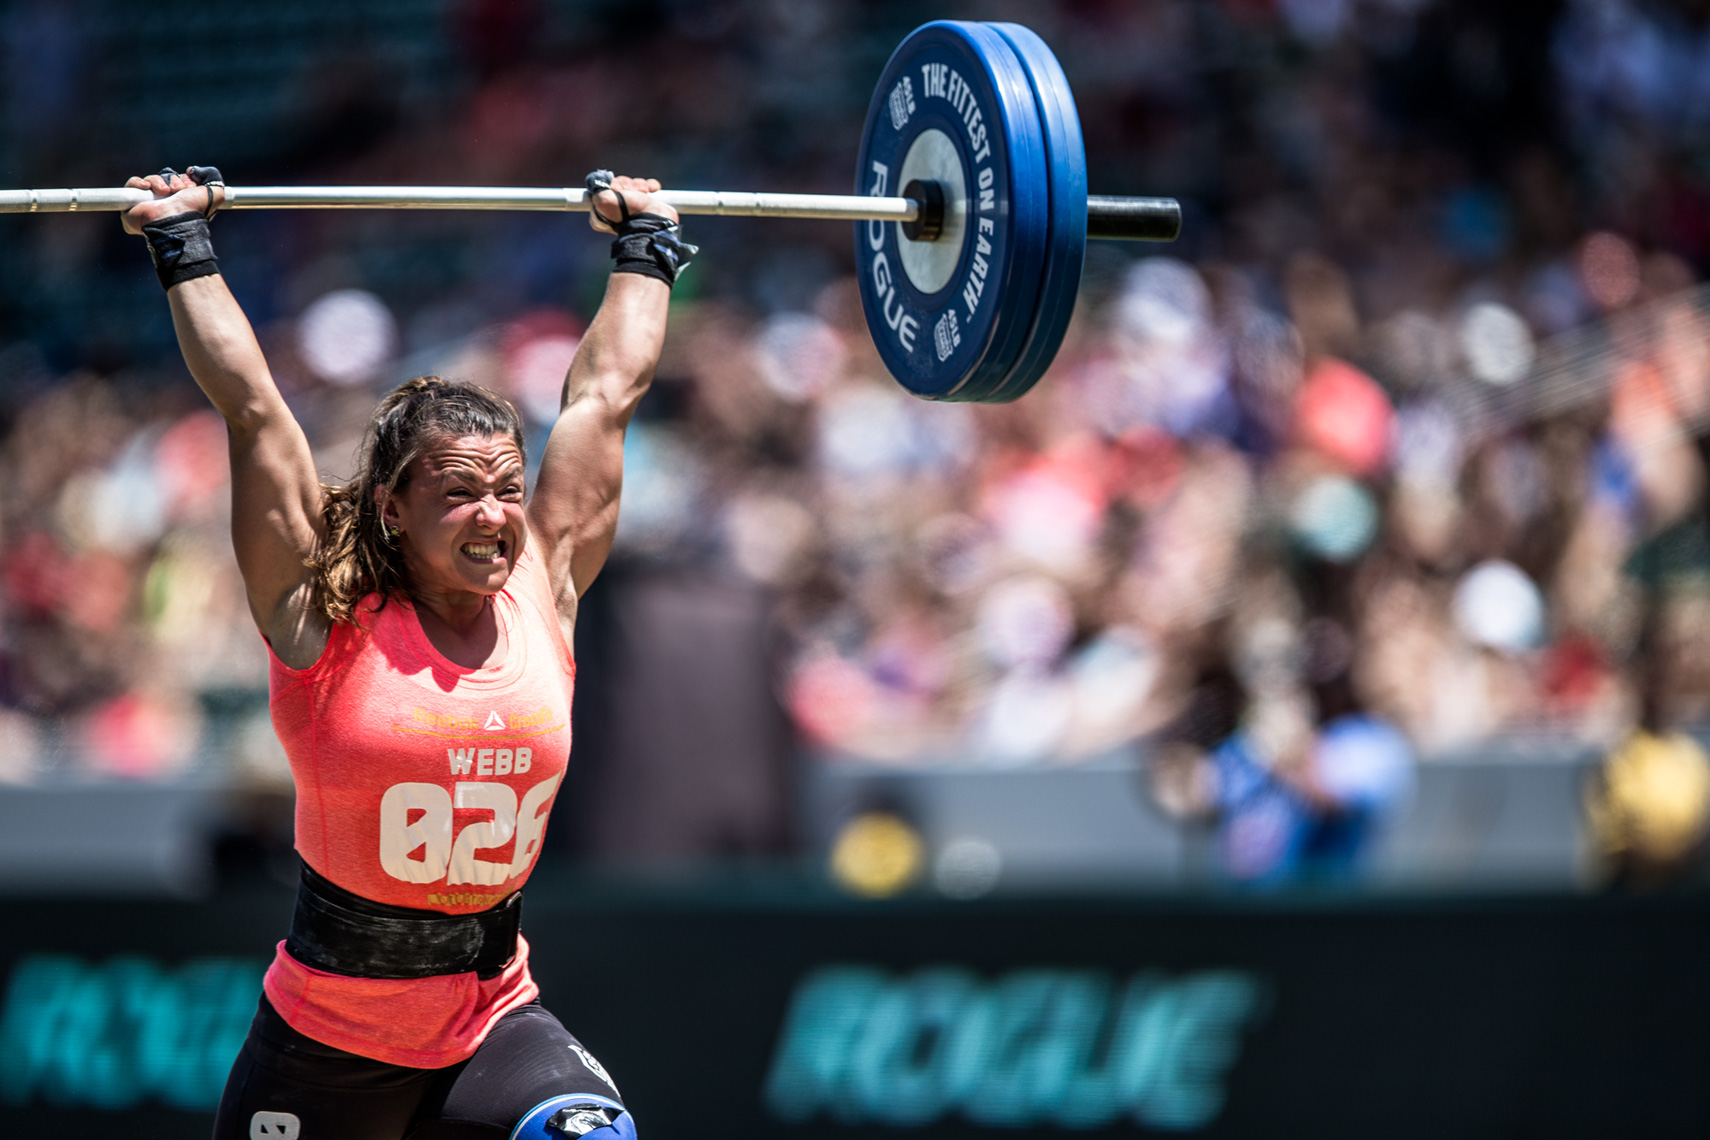 Los Angeles Sports Photography, Michael Brian, athlete, female, Kara Webb, Reebok Crossfit Games Australian athlete, Clean and Jerk Ladder, StubHub Center